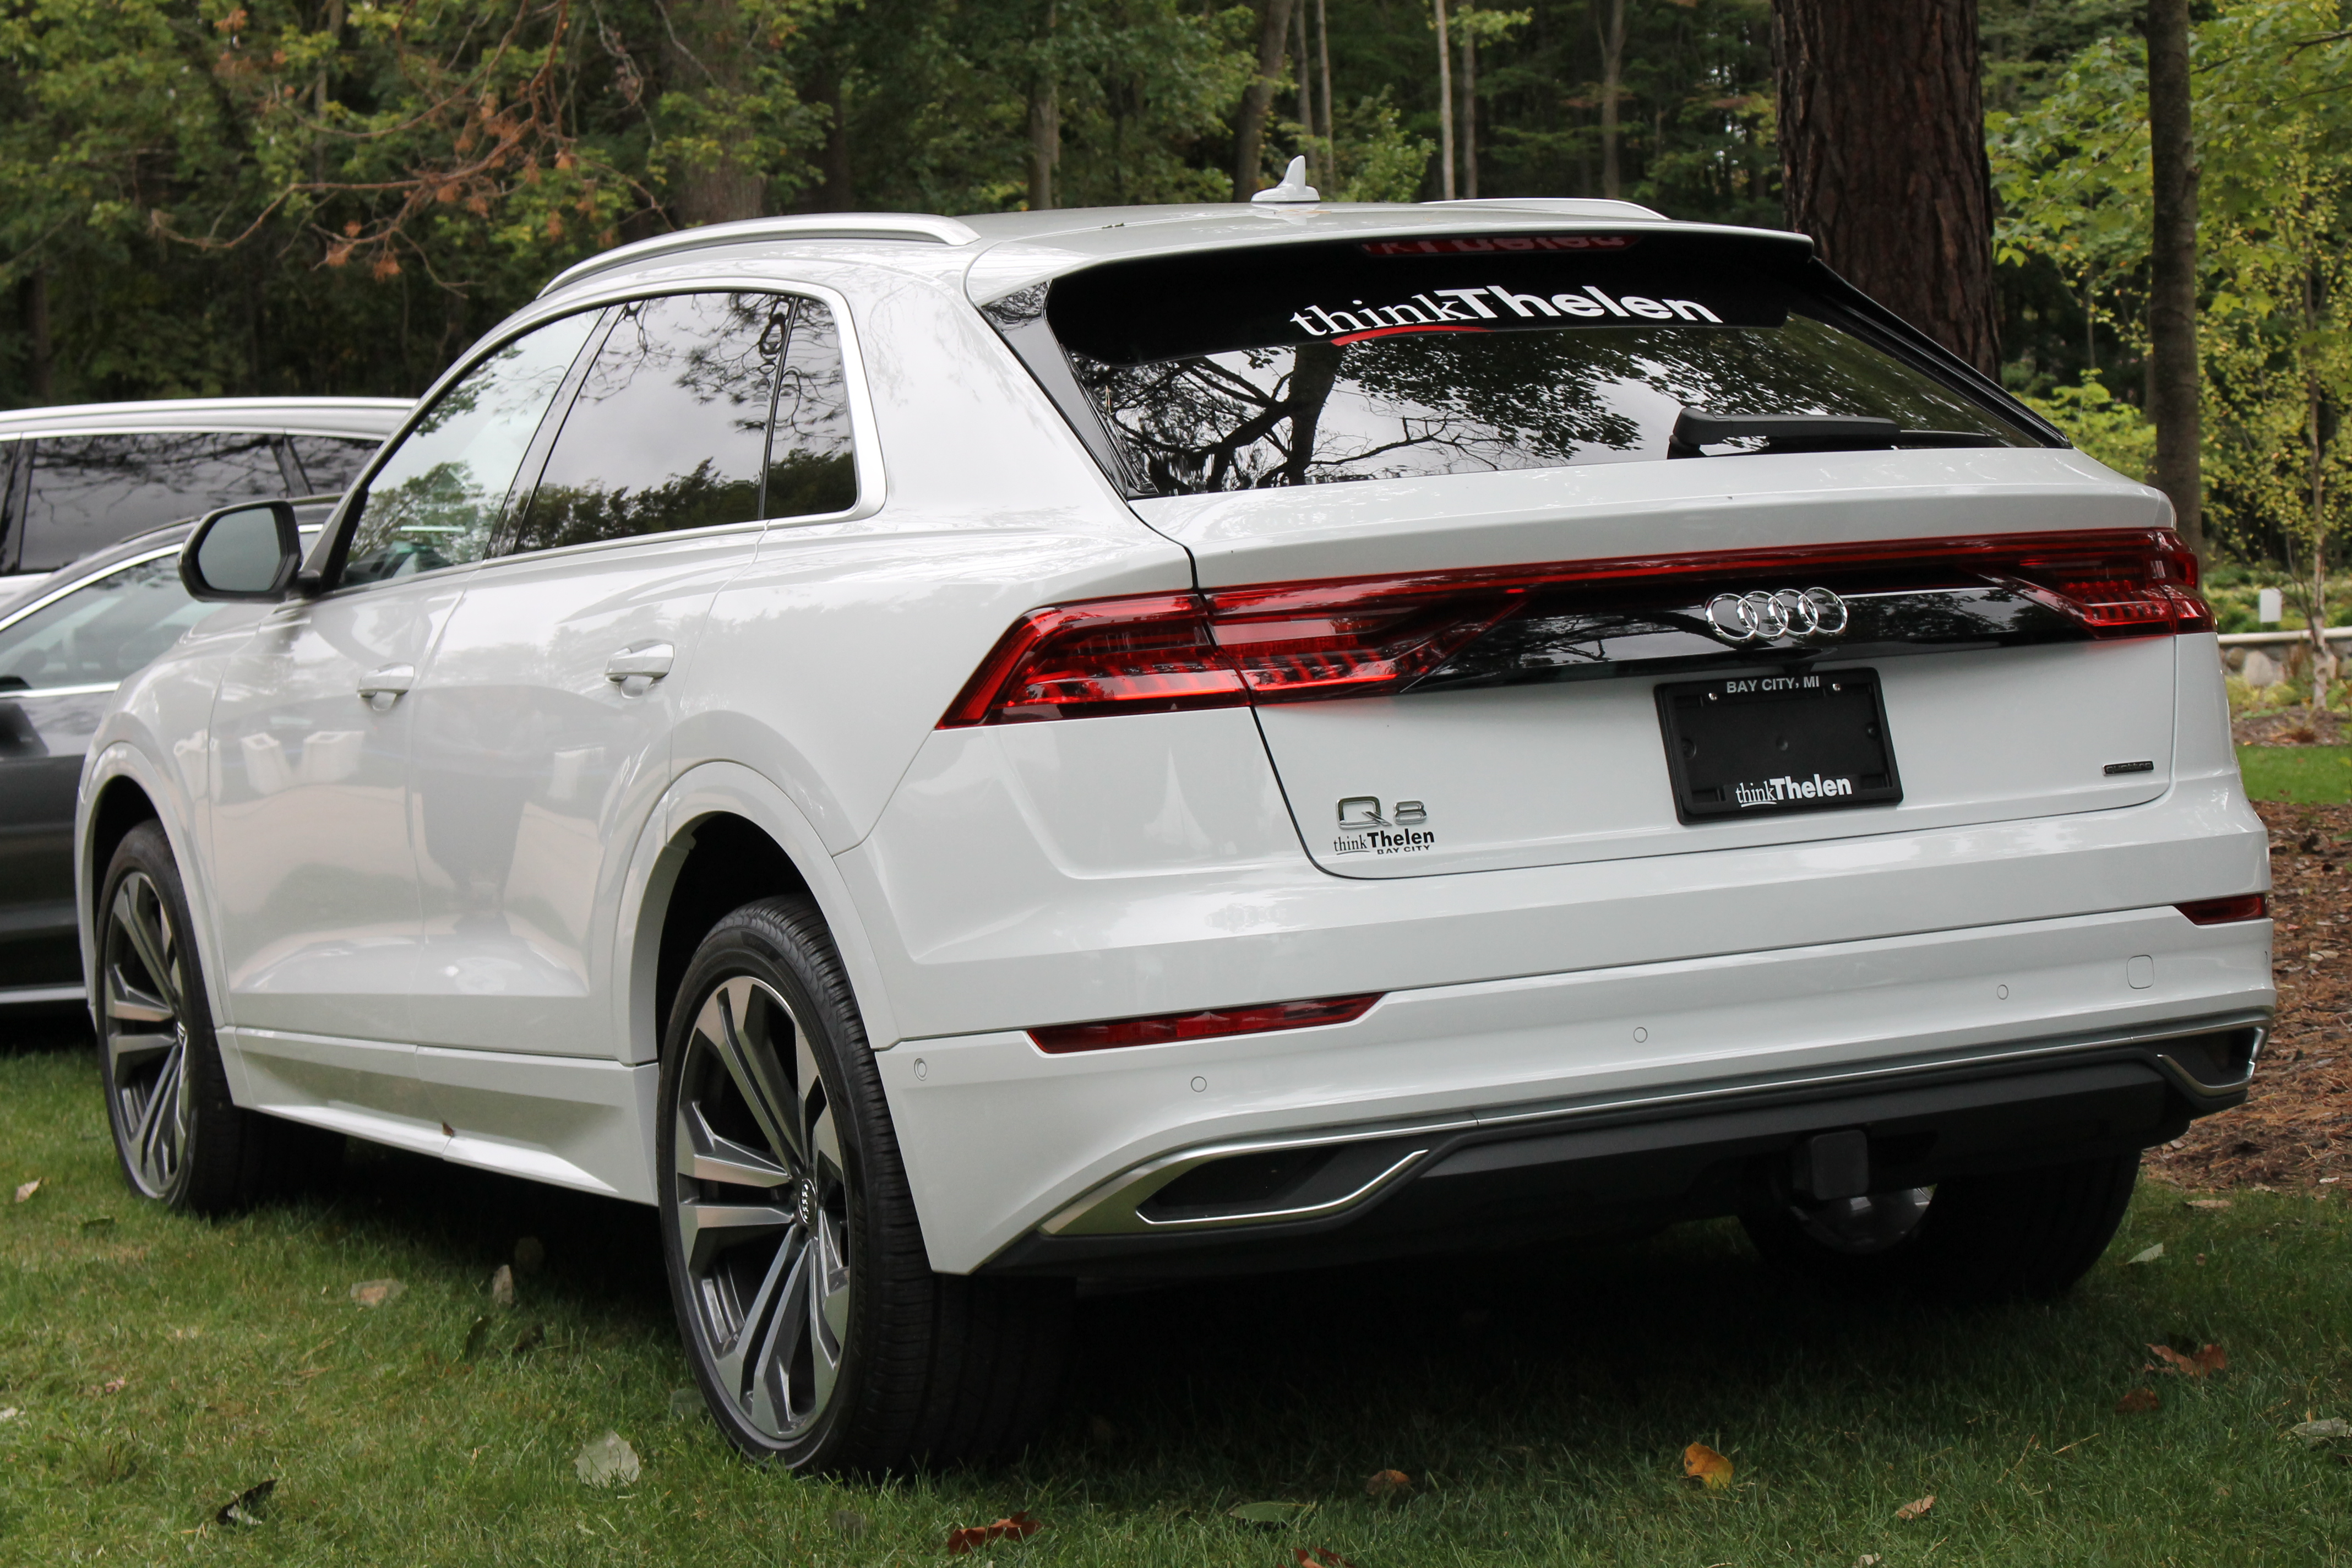 Thelen Audi was Excited to be a Part of the Northwood University Int'l Car Show